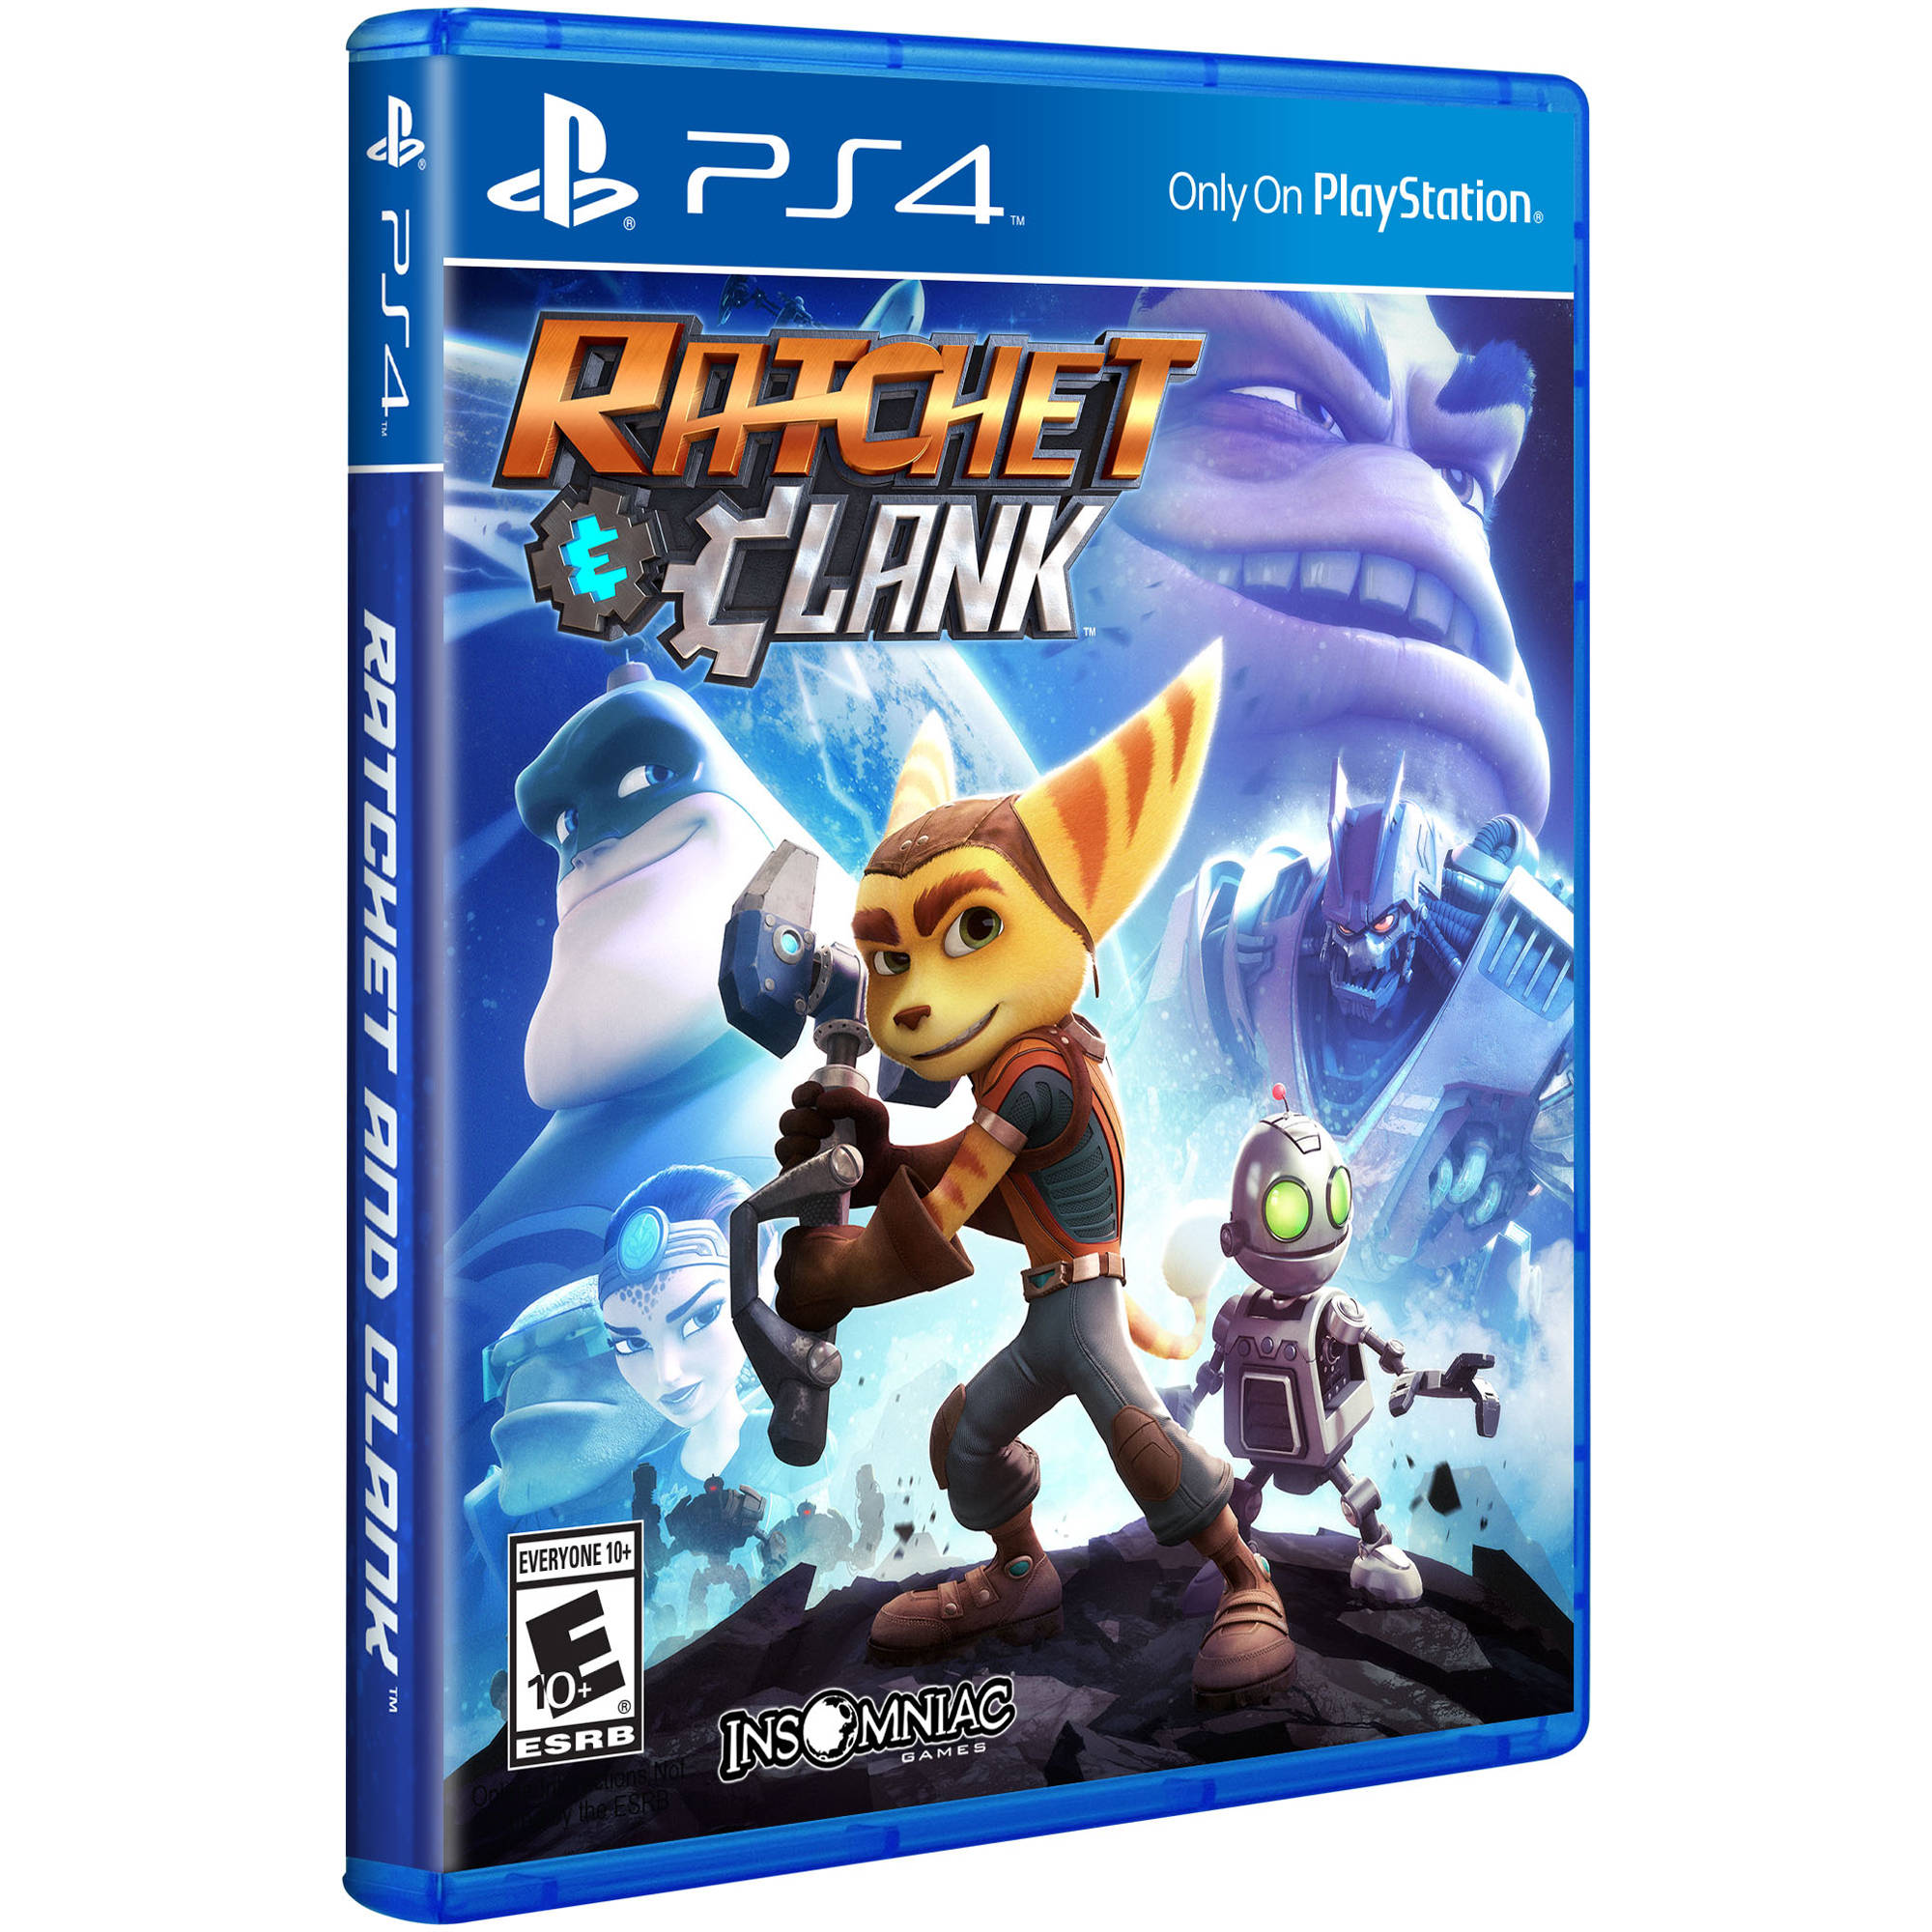 sony_3000550_ratchet_and_clank_ps4_1243557.jpg